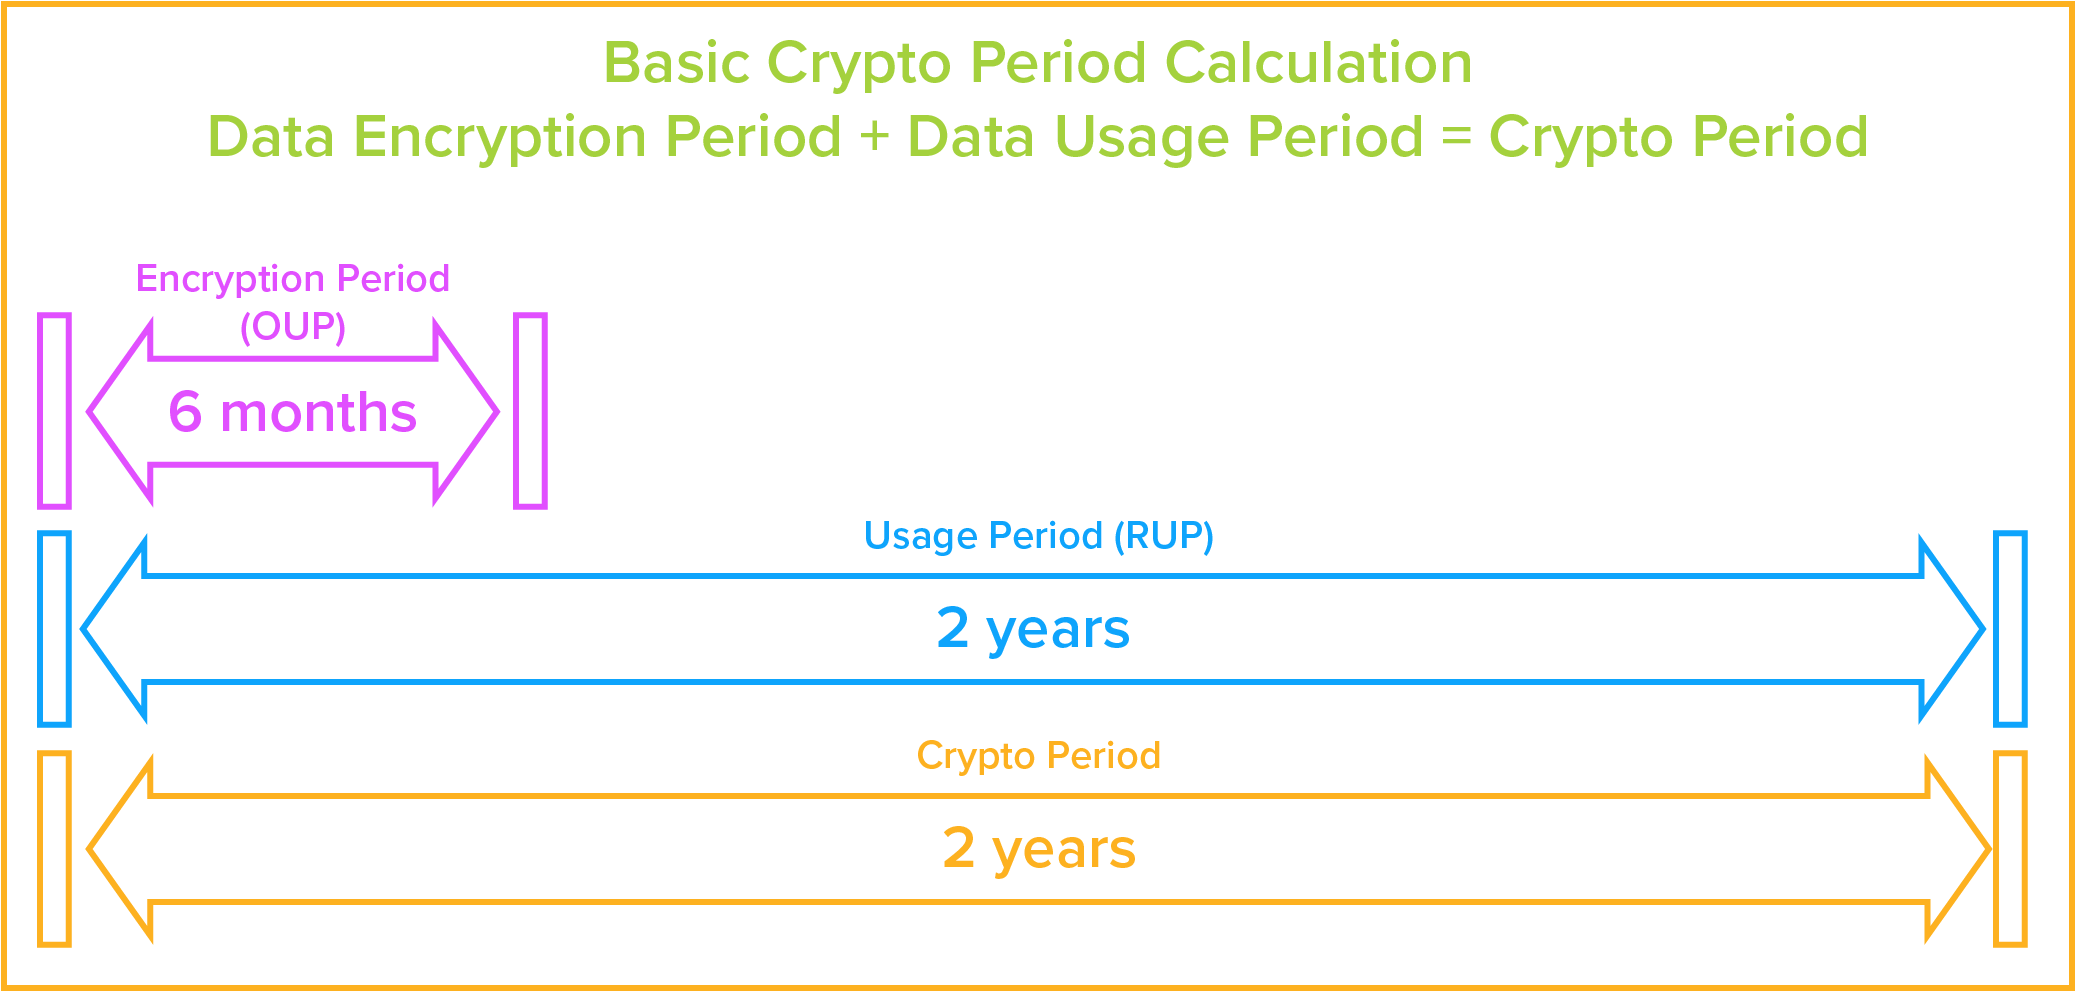 Basic Flowchart of Crypto Period for Encryption Keys